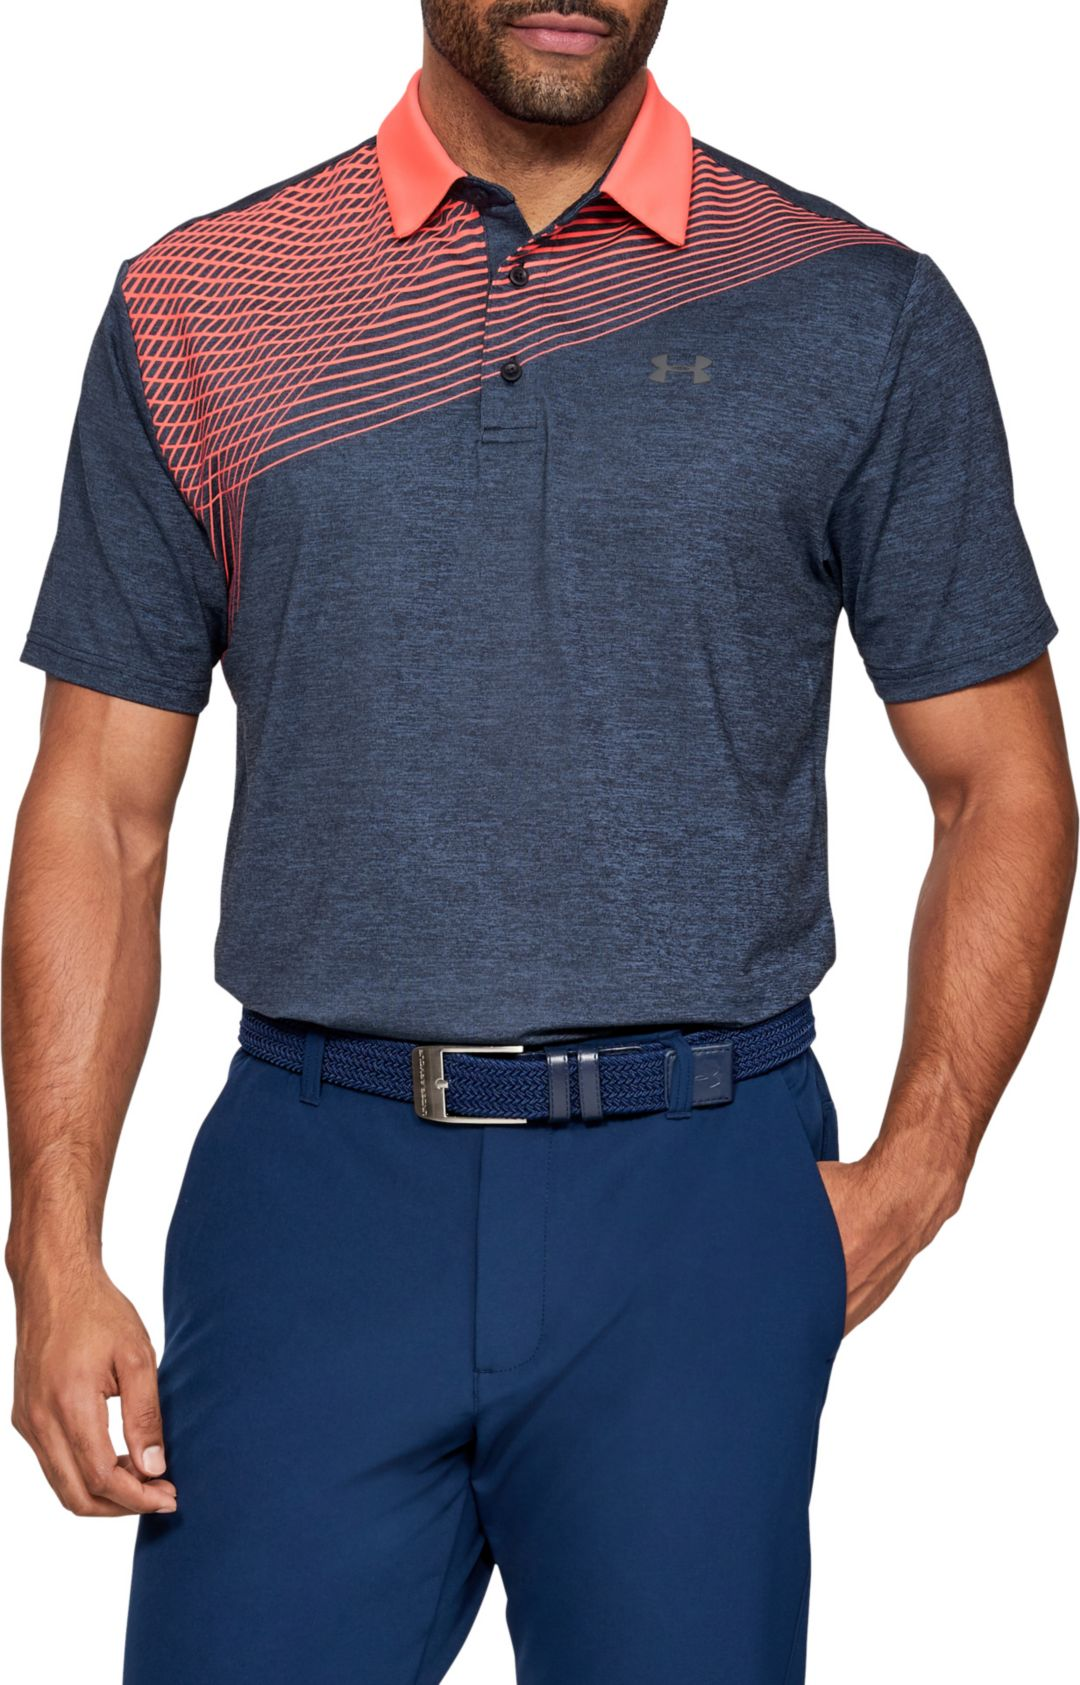 f7a575d463 Under Armour Men's Playoff 2.0 Backswing Golf Polo | DICK'S Sporting ...